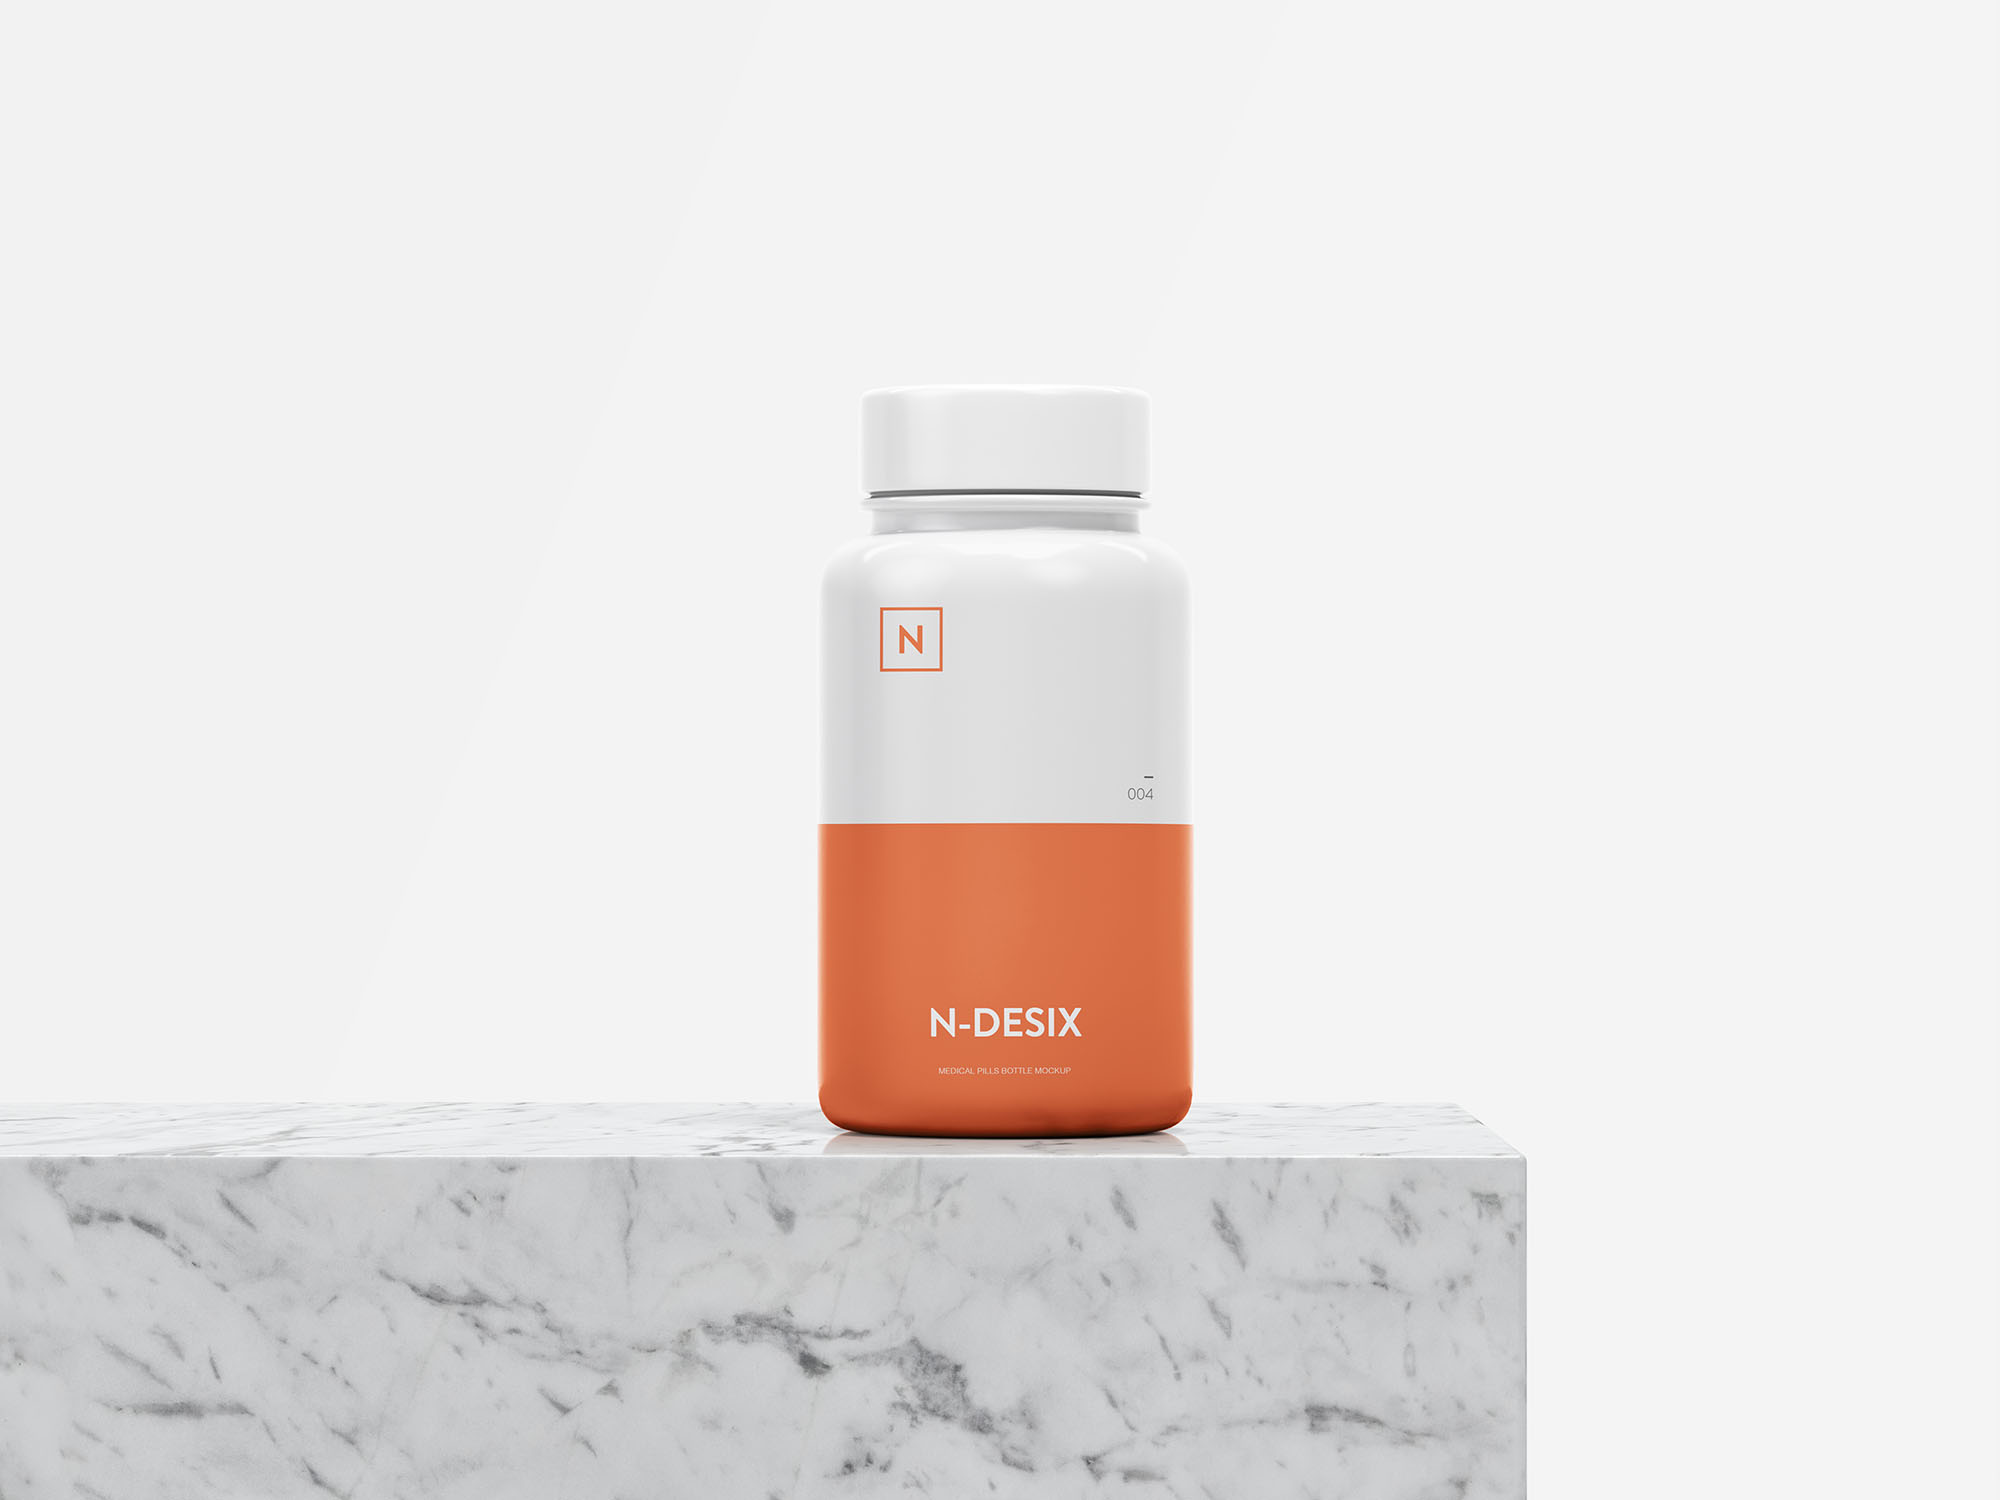 Free Pills Bottle Mockup